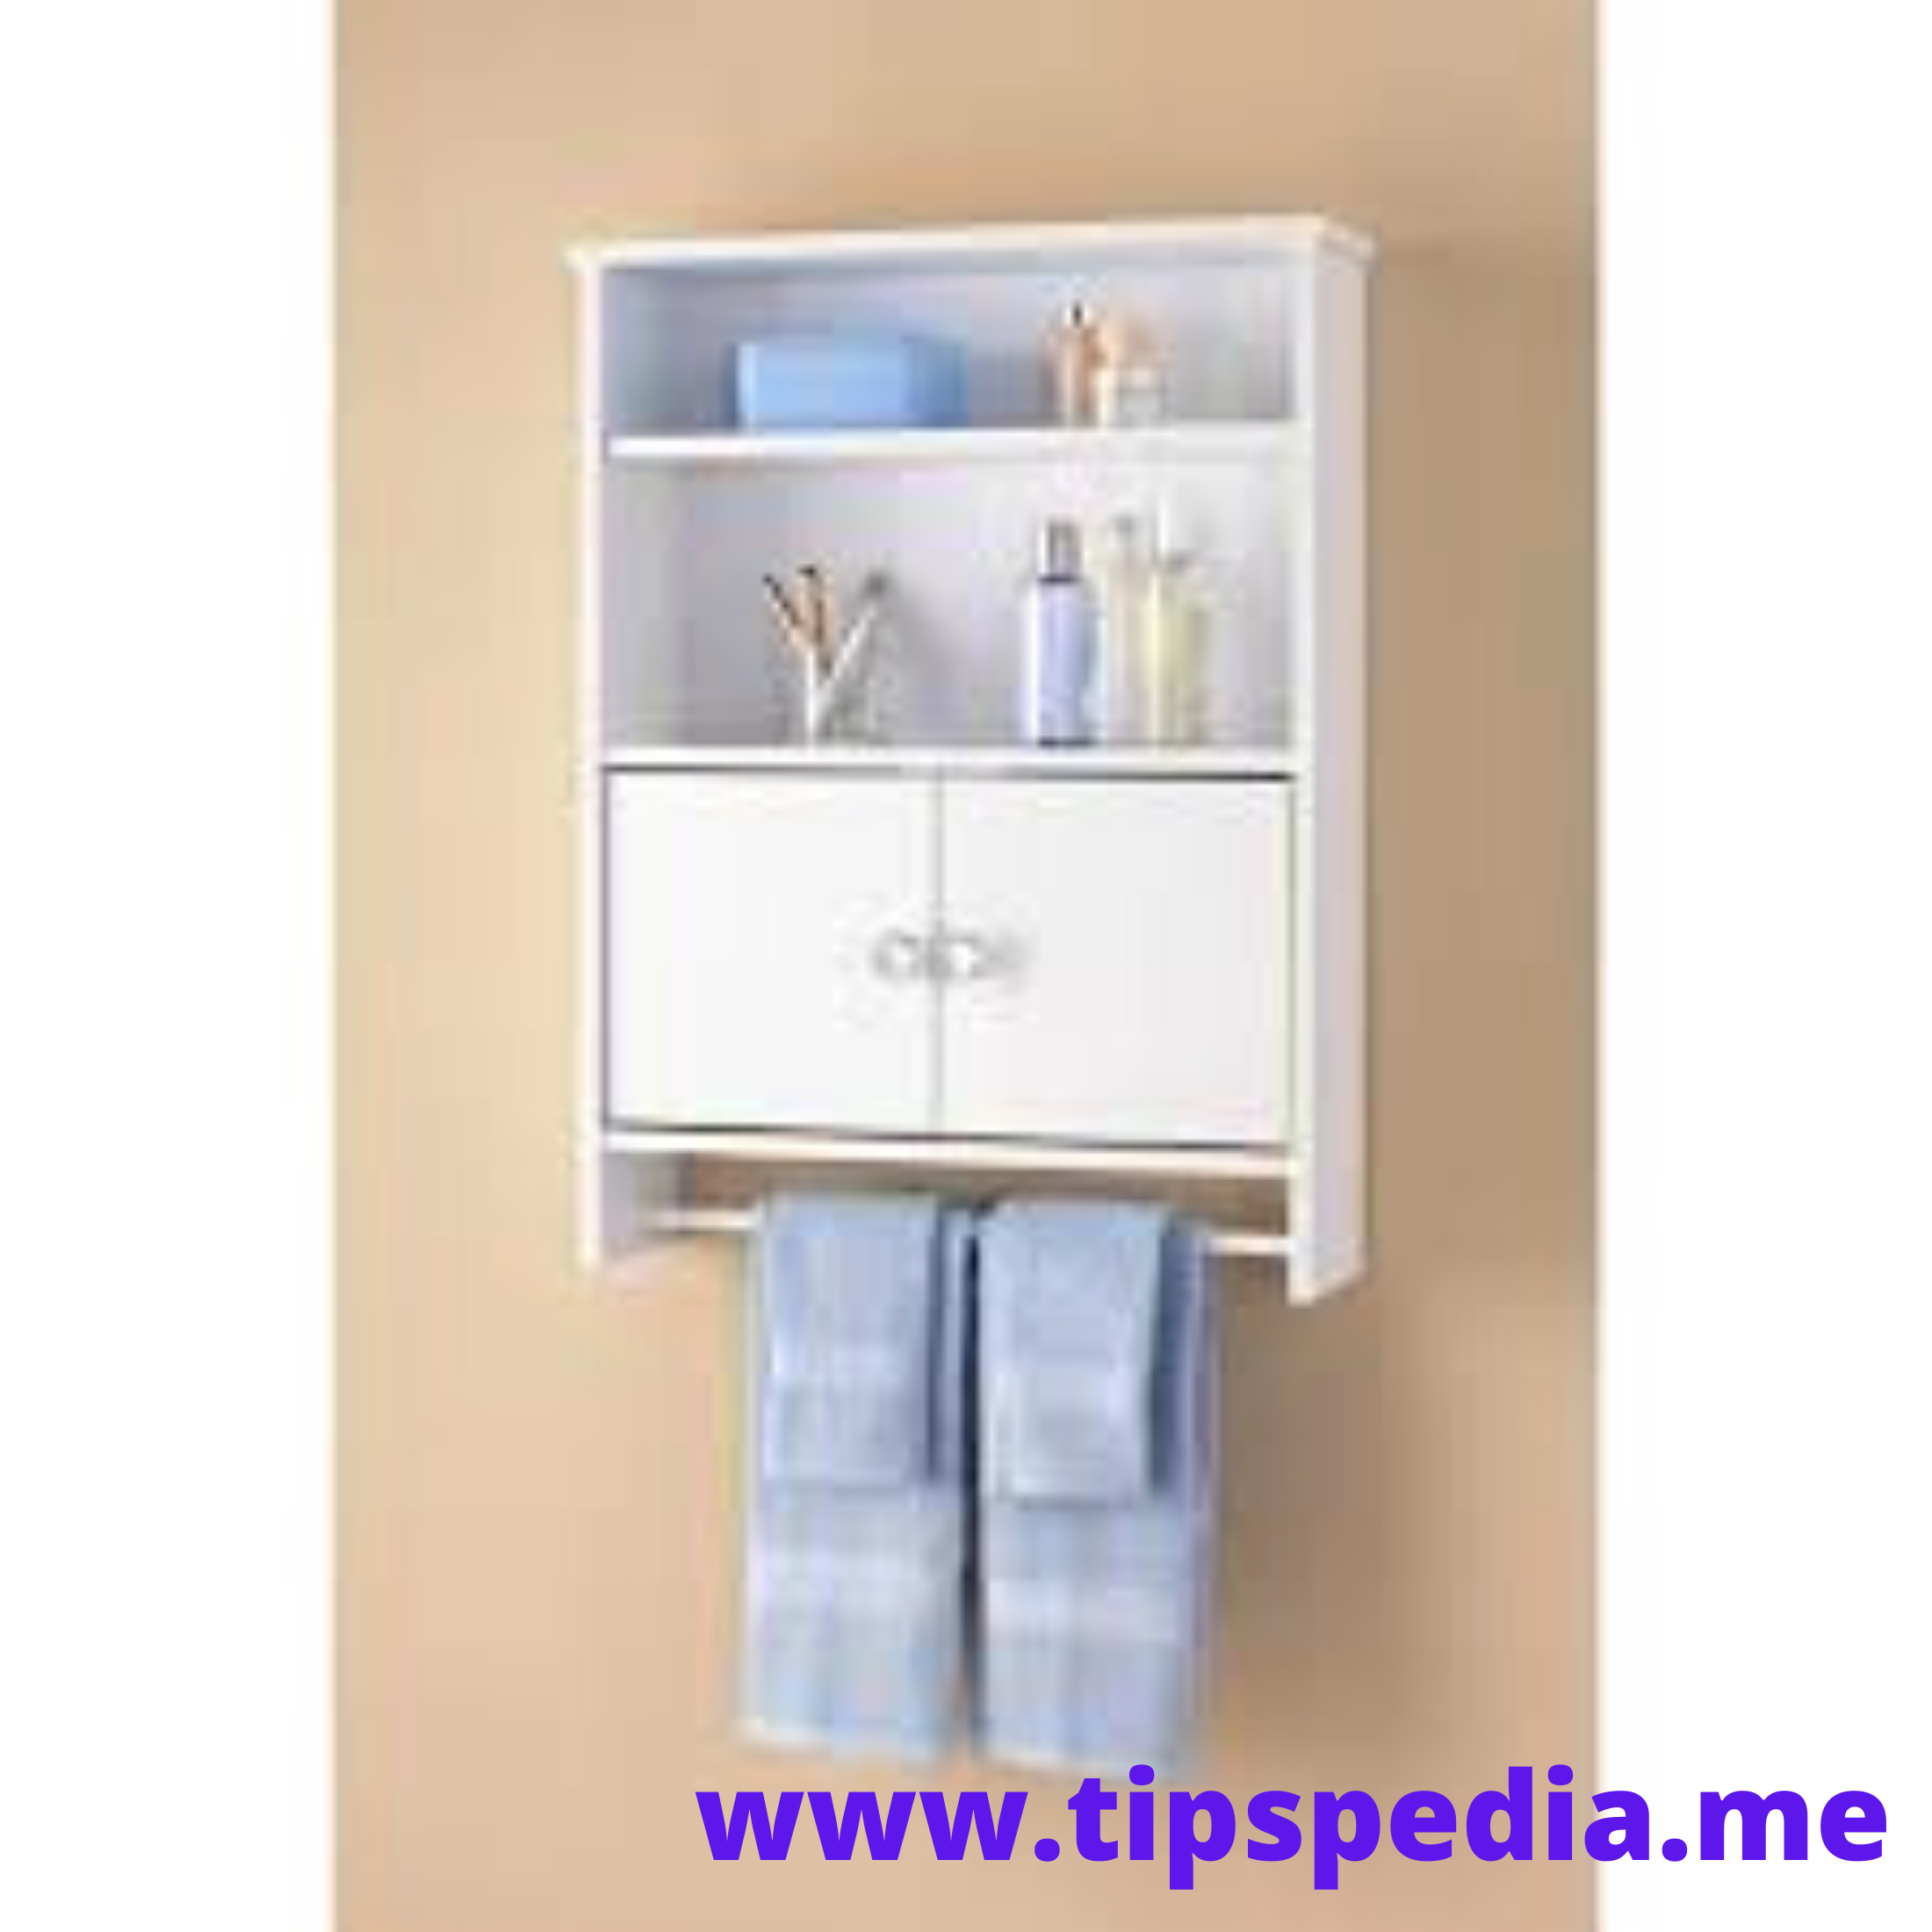 Bathroom Wall Cabinet Bed Bath And Beyond In 2021 Cabinet Bed Wall Cabinet Bathroom Wall Cabinets